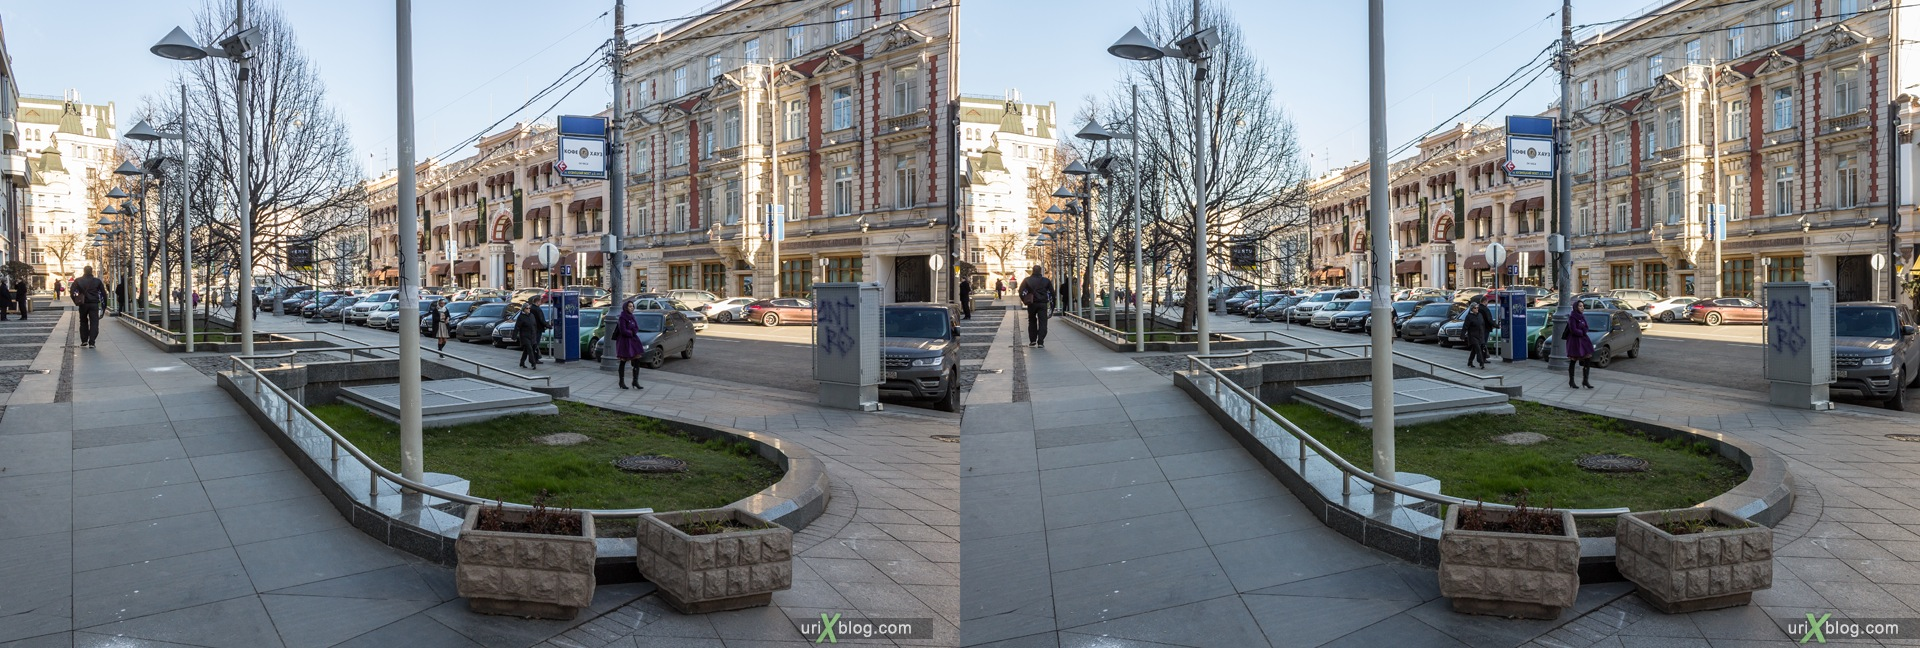 2013, Moscow, Russia, Petrovka, street, new pedestrian zone, 3D, stereo pair, cross-eyed, crossview, cross view stereo pair, stereoscopic